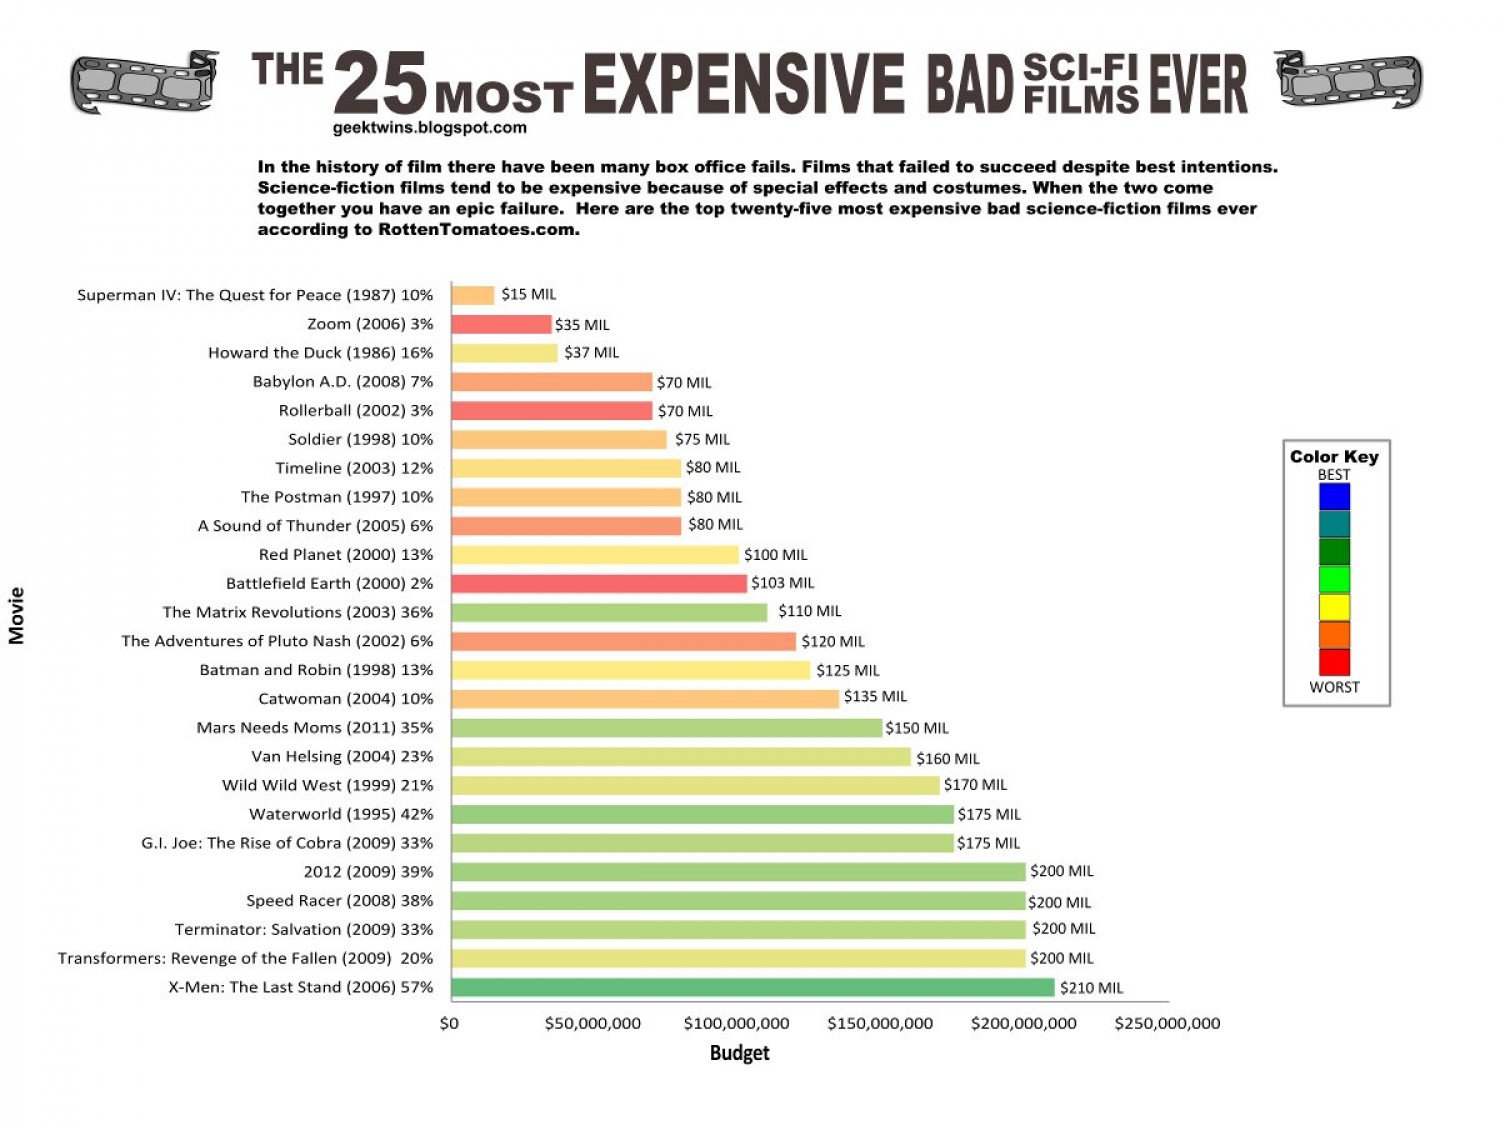 Top 25 Most Expensive Bad Sci-Fi Movies Ever Made Infographic